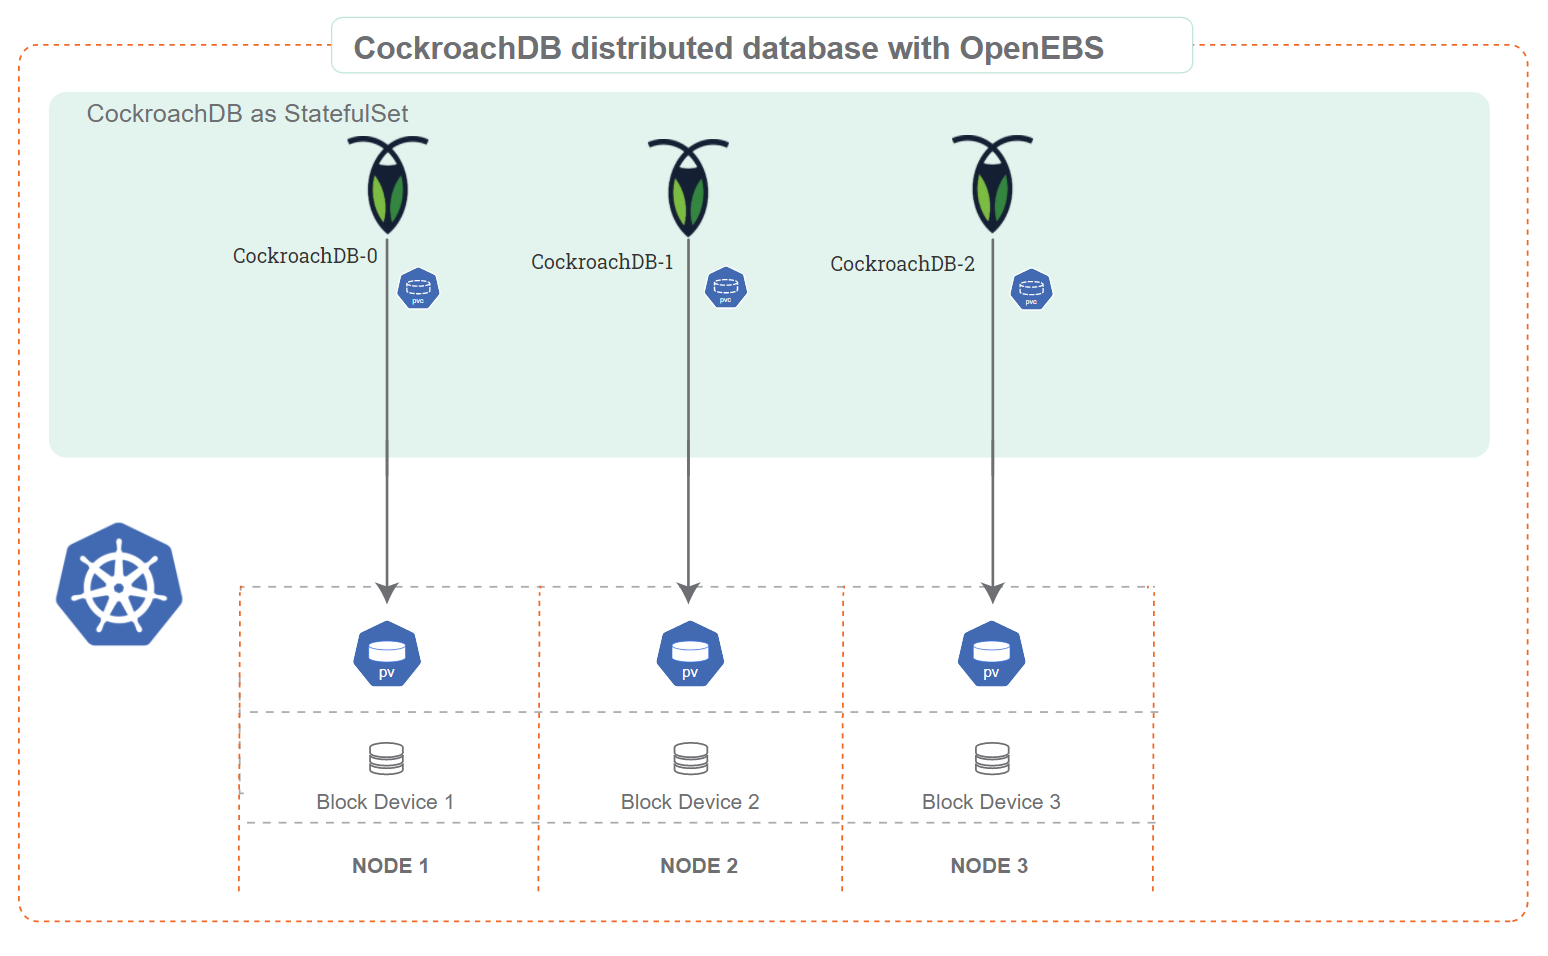 CockroachDB distributed database for OpenEBS